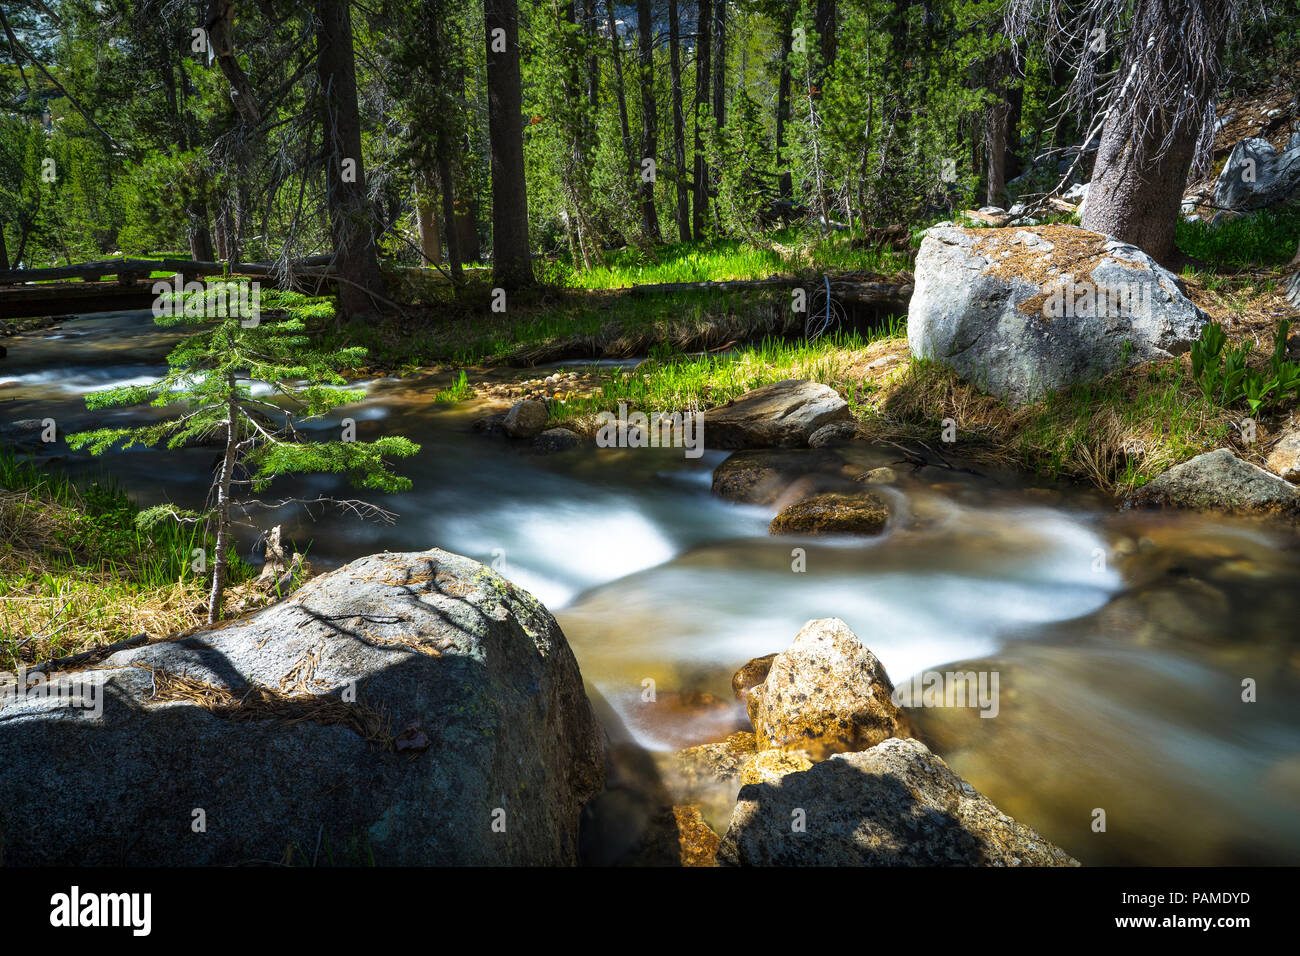 Sunny, smooth  flowing Tenaya Creek, in the forest near Tioga Pass - Yosemite National Park - Stock Image